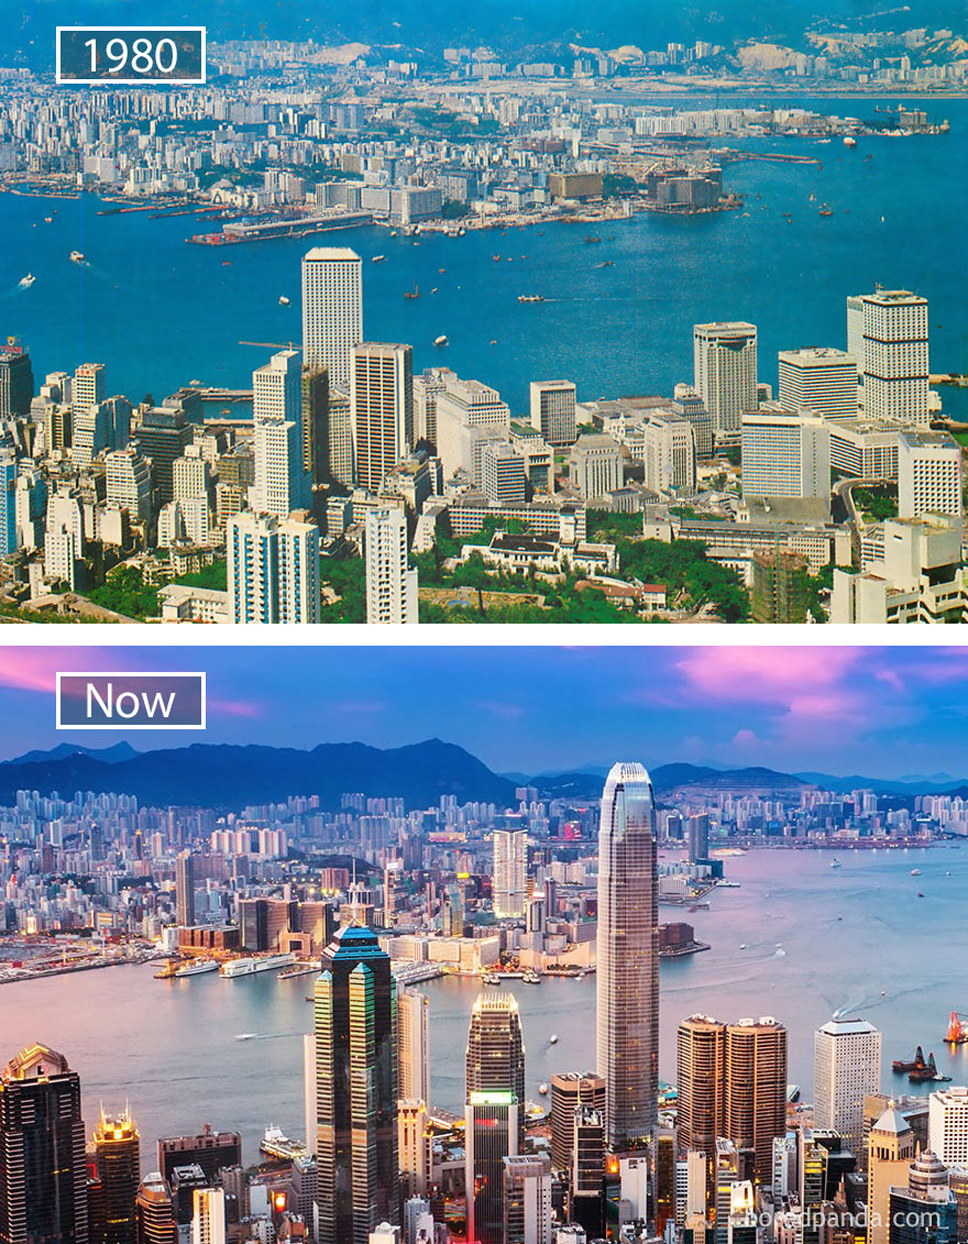 how-famous-city-changed-timelapse-evolution-before-after-11-5774ed3ac03df__880